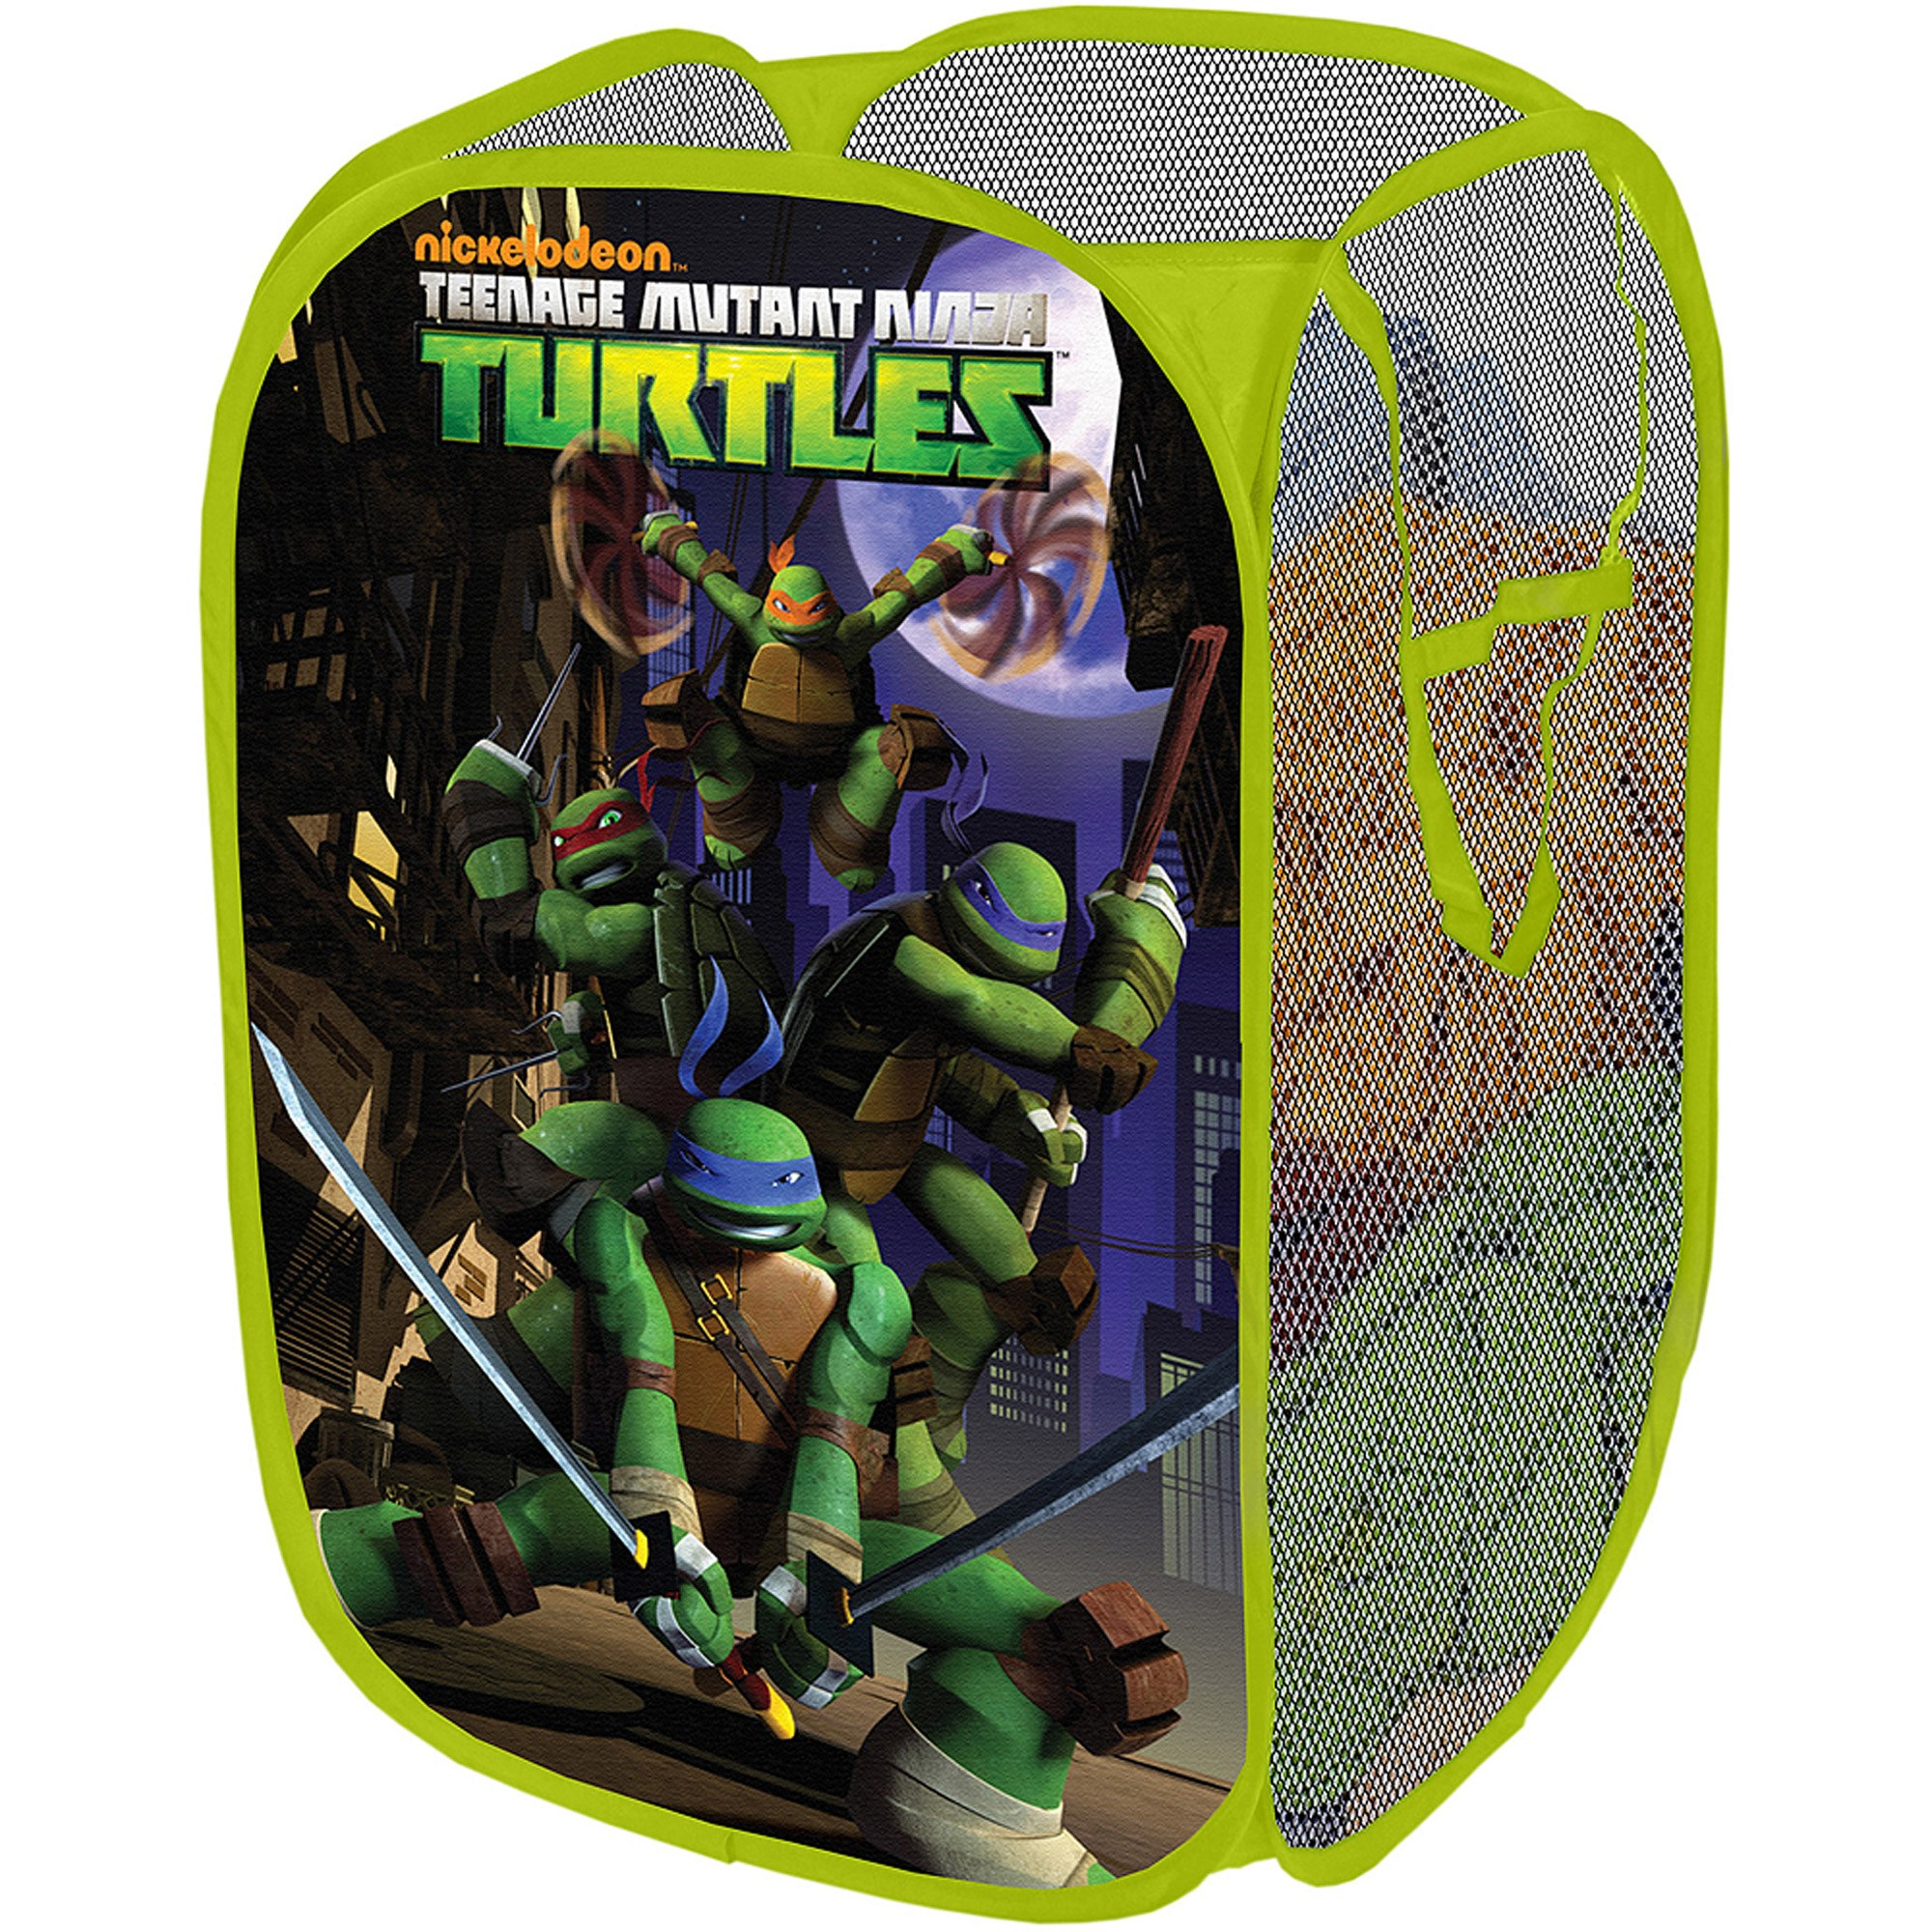 Nickelodeon Teenage Mutant Ninja Turtles Collapsible Storage Pop Up Hamper